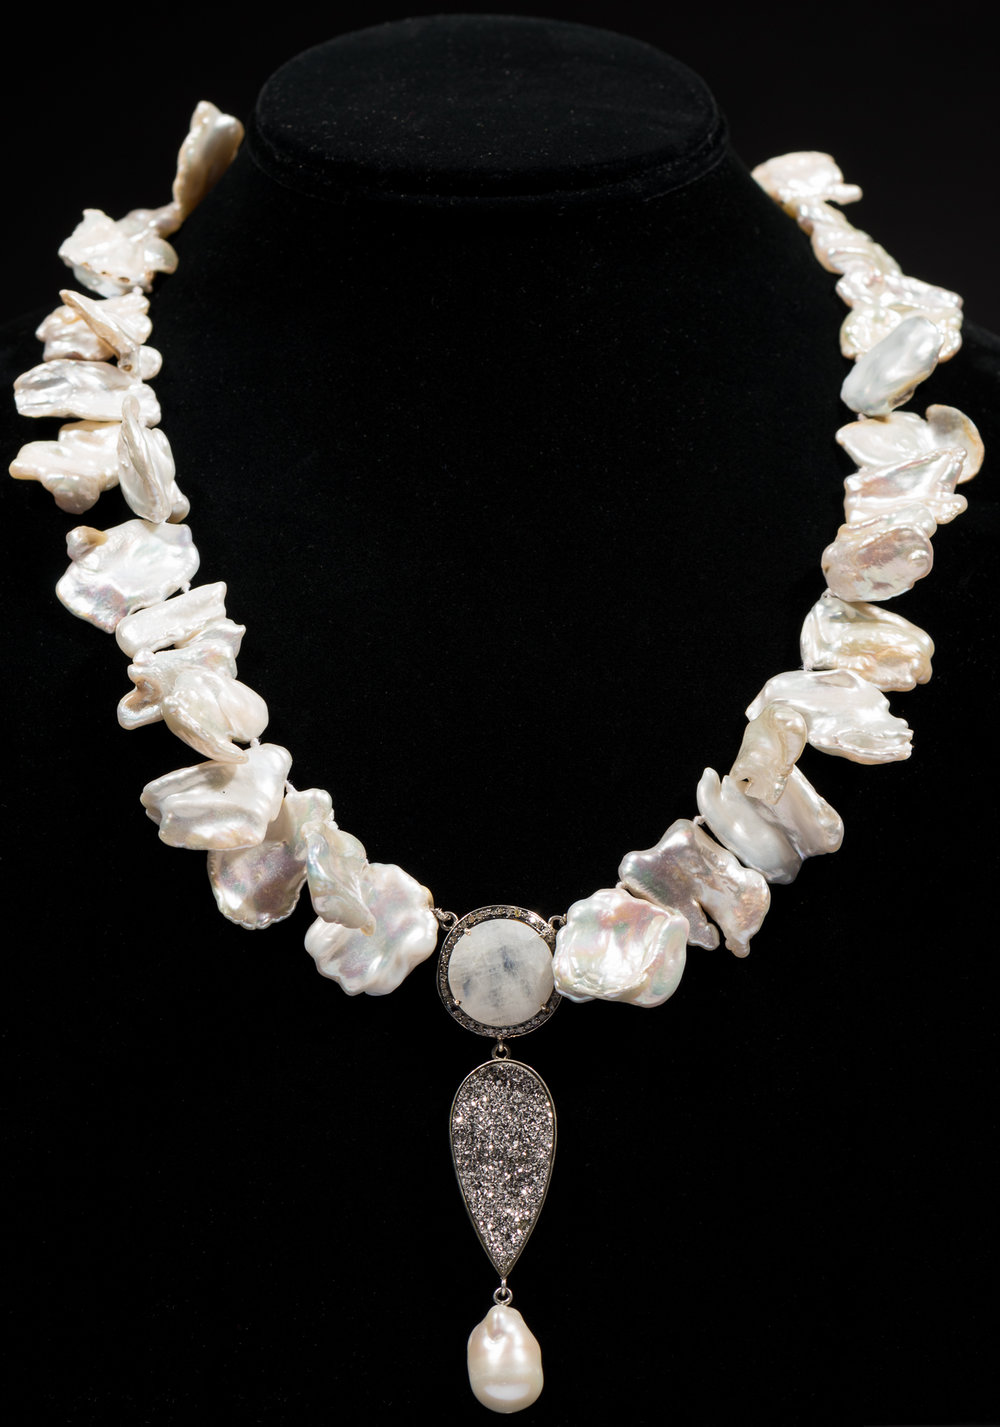 Freshwater pearls with pave diamonds surrounding moonstone, druzy encased in sterling silver and baroque pearl drop